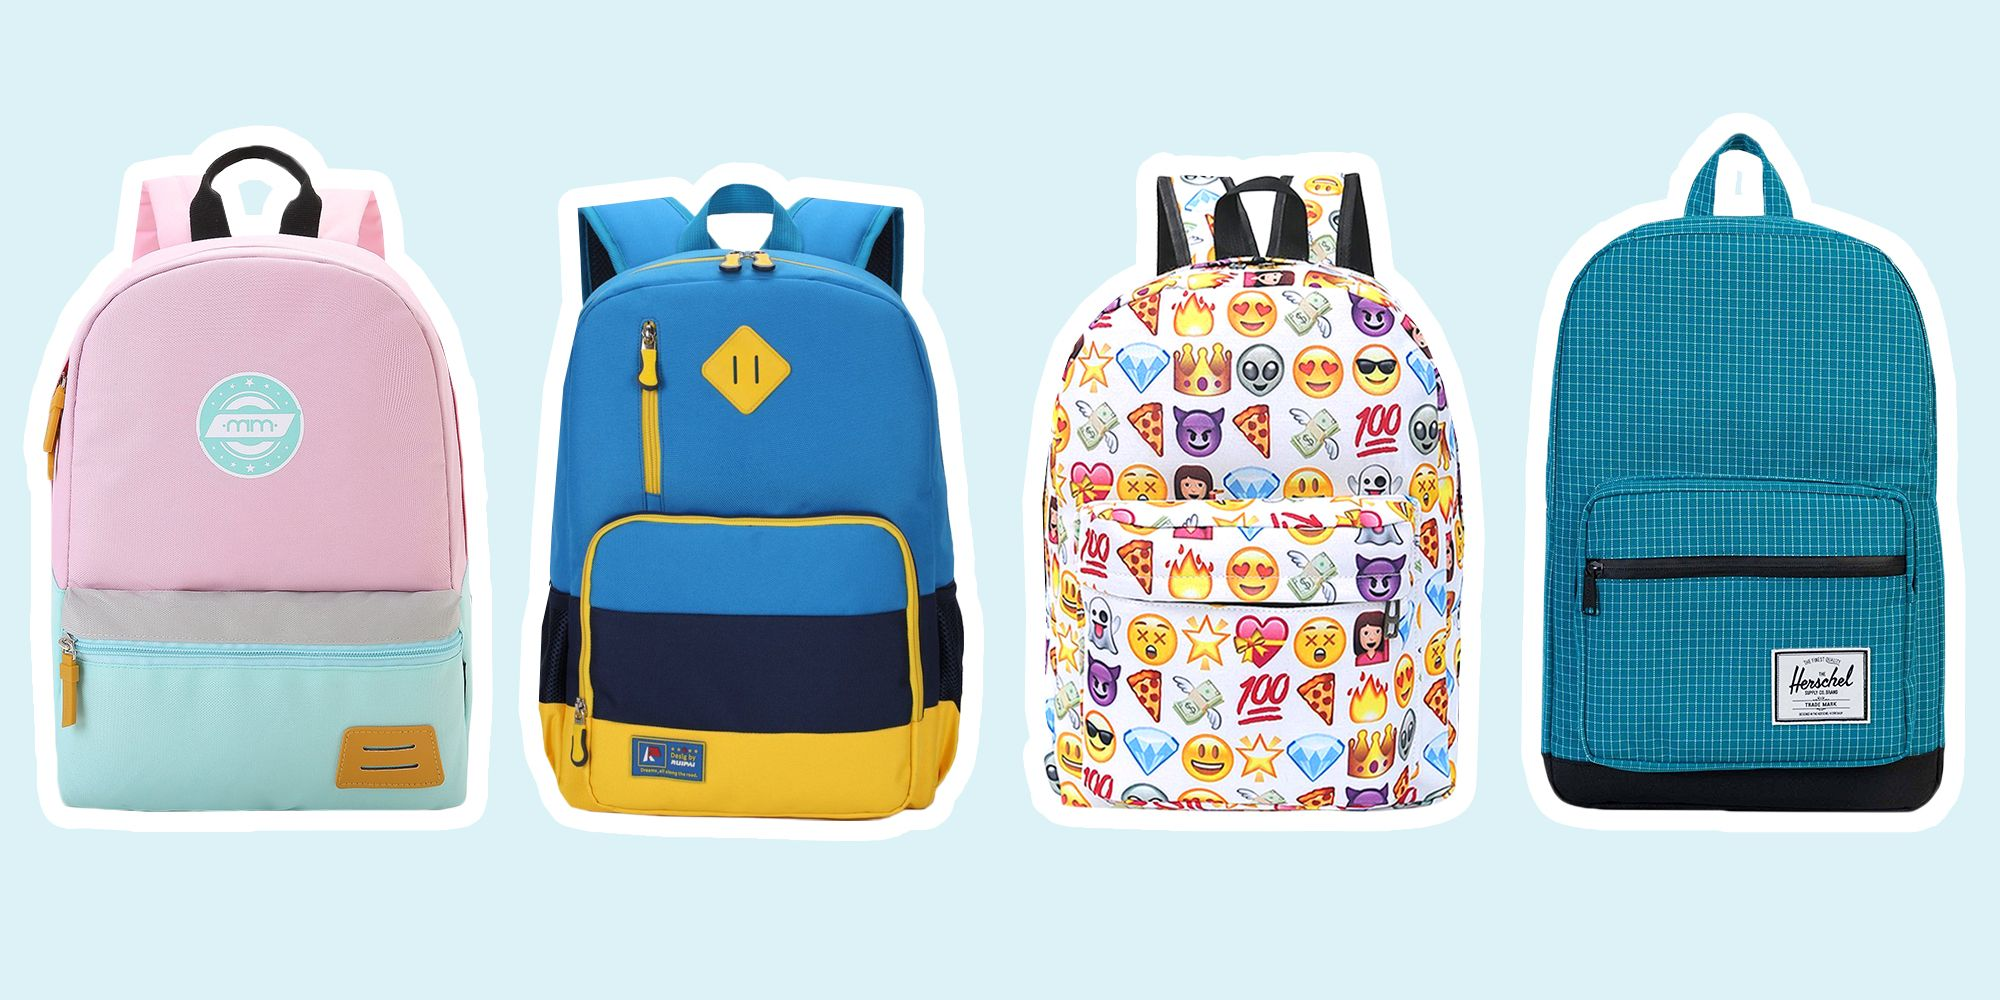 21 Best Backpacks for Kids in 2018 - Cool Kids Backpacks   Book Bags a95a0fcd6e4b0